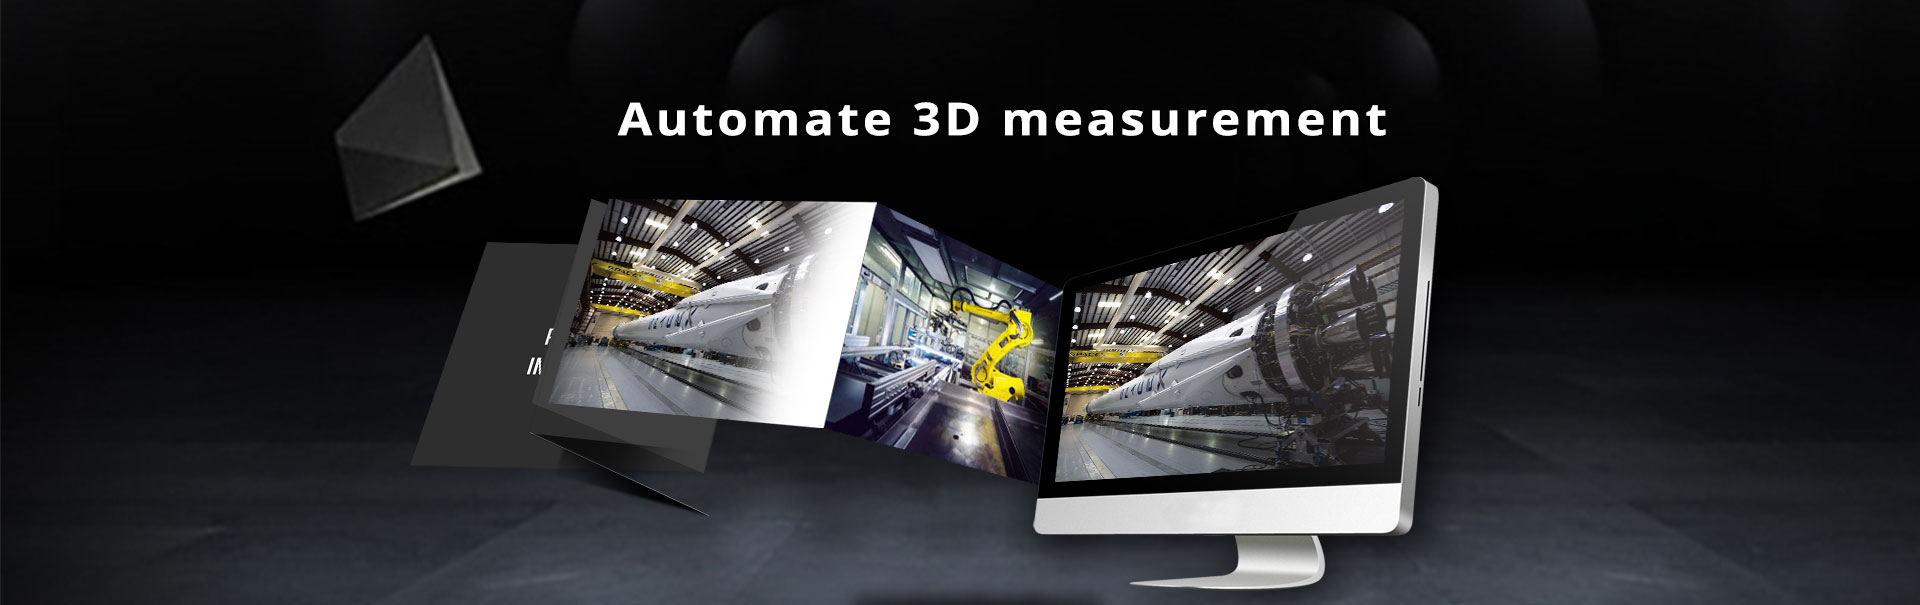 Automated 3D Measurement